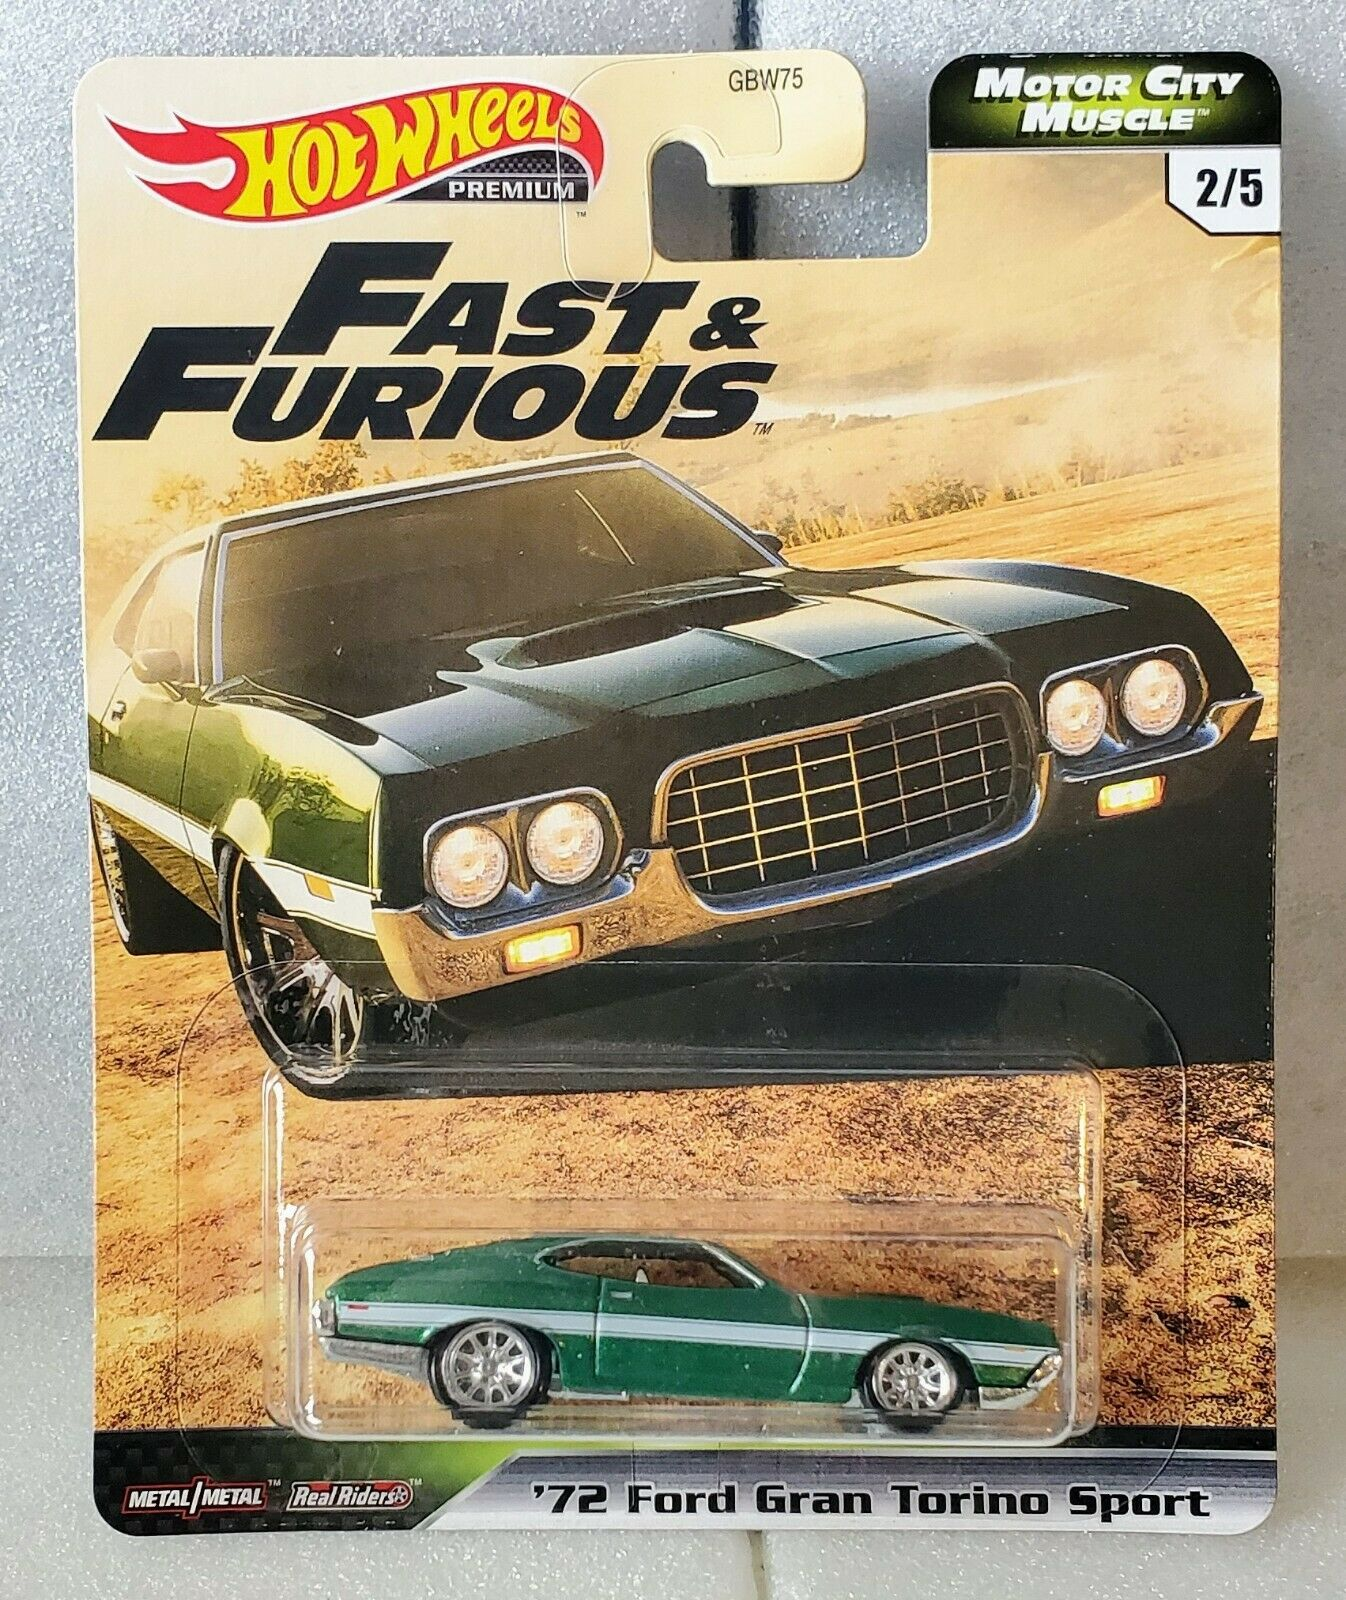 Hot Wheels Premium 2020 Motor City Muscle F&F, '72 Ford Gran Torino Sport